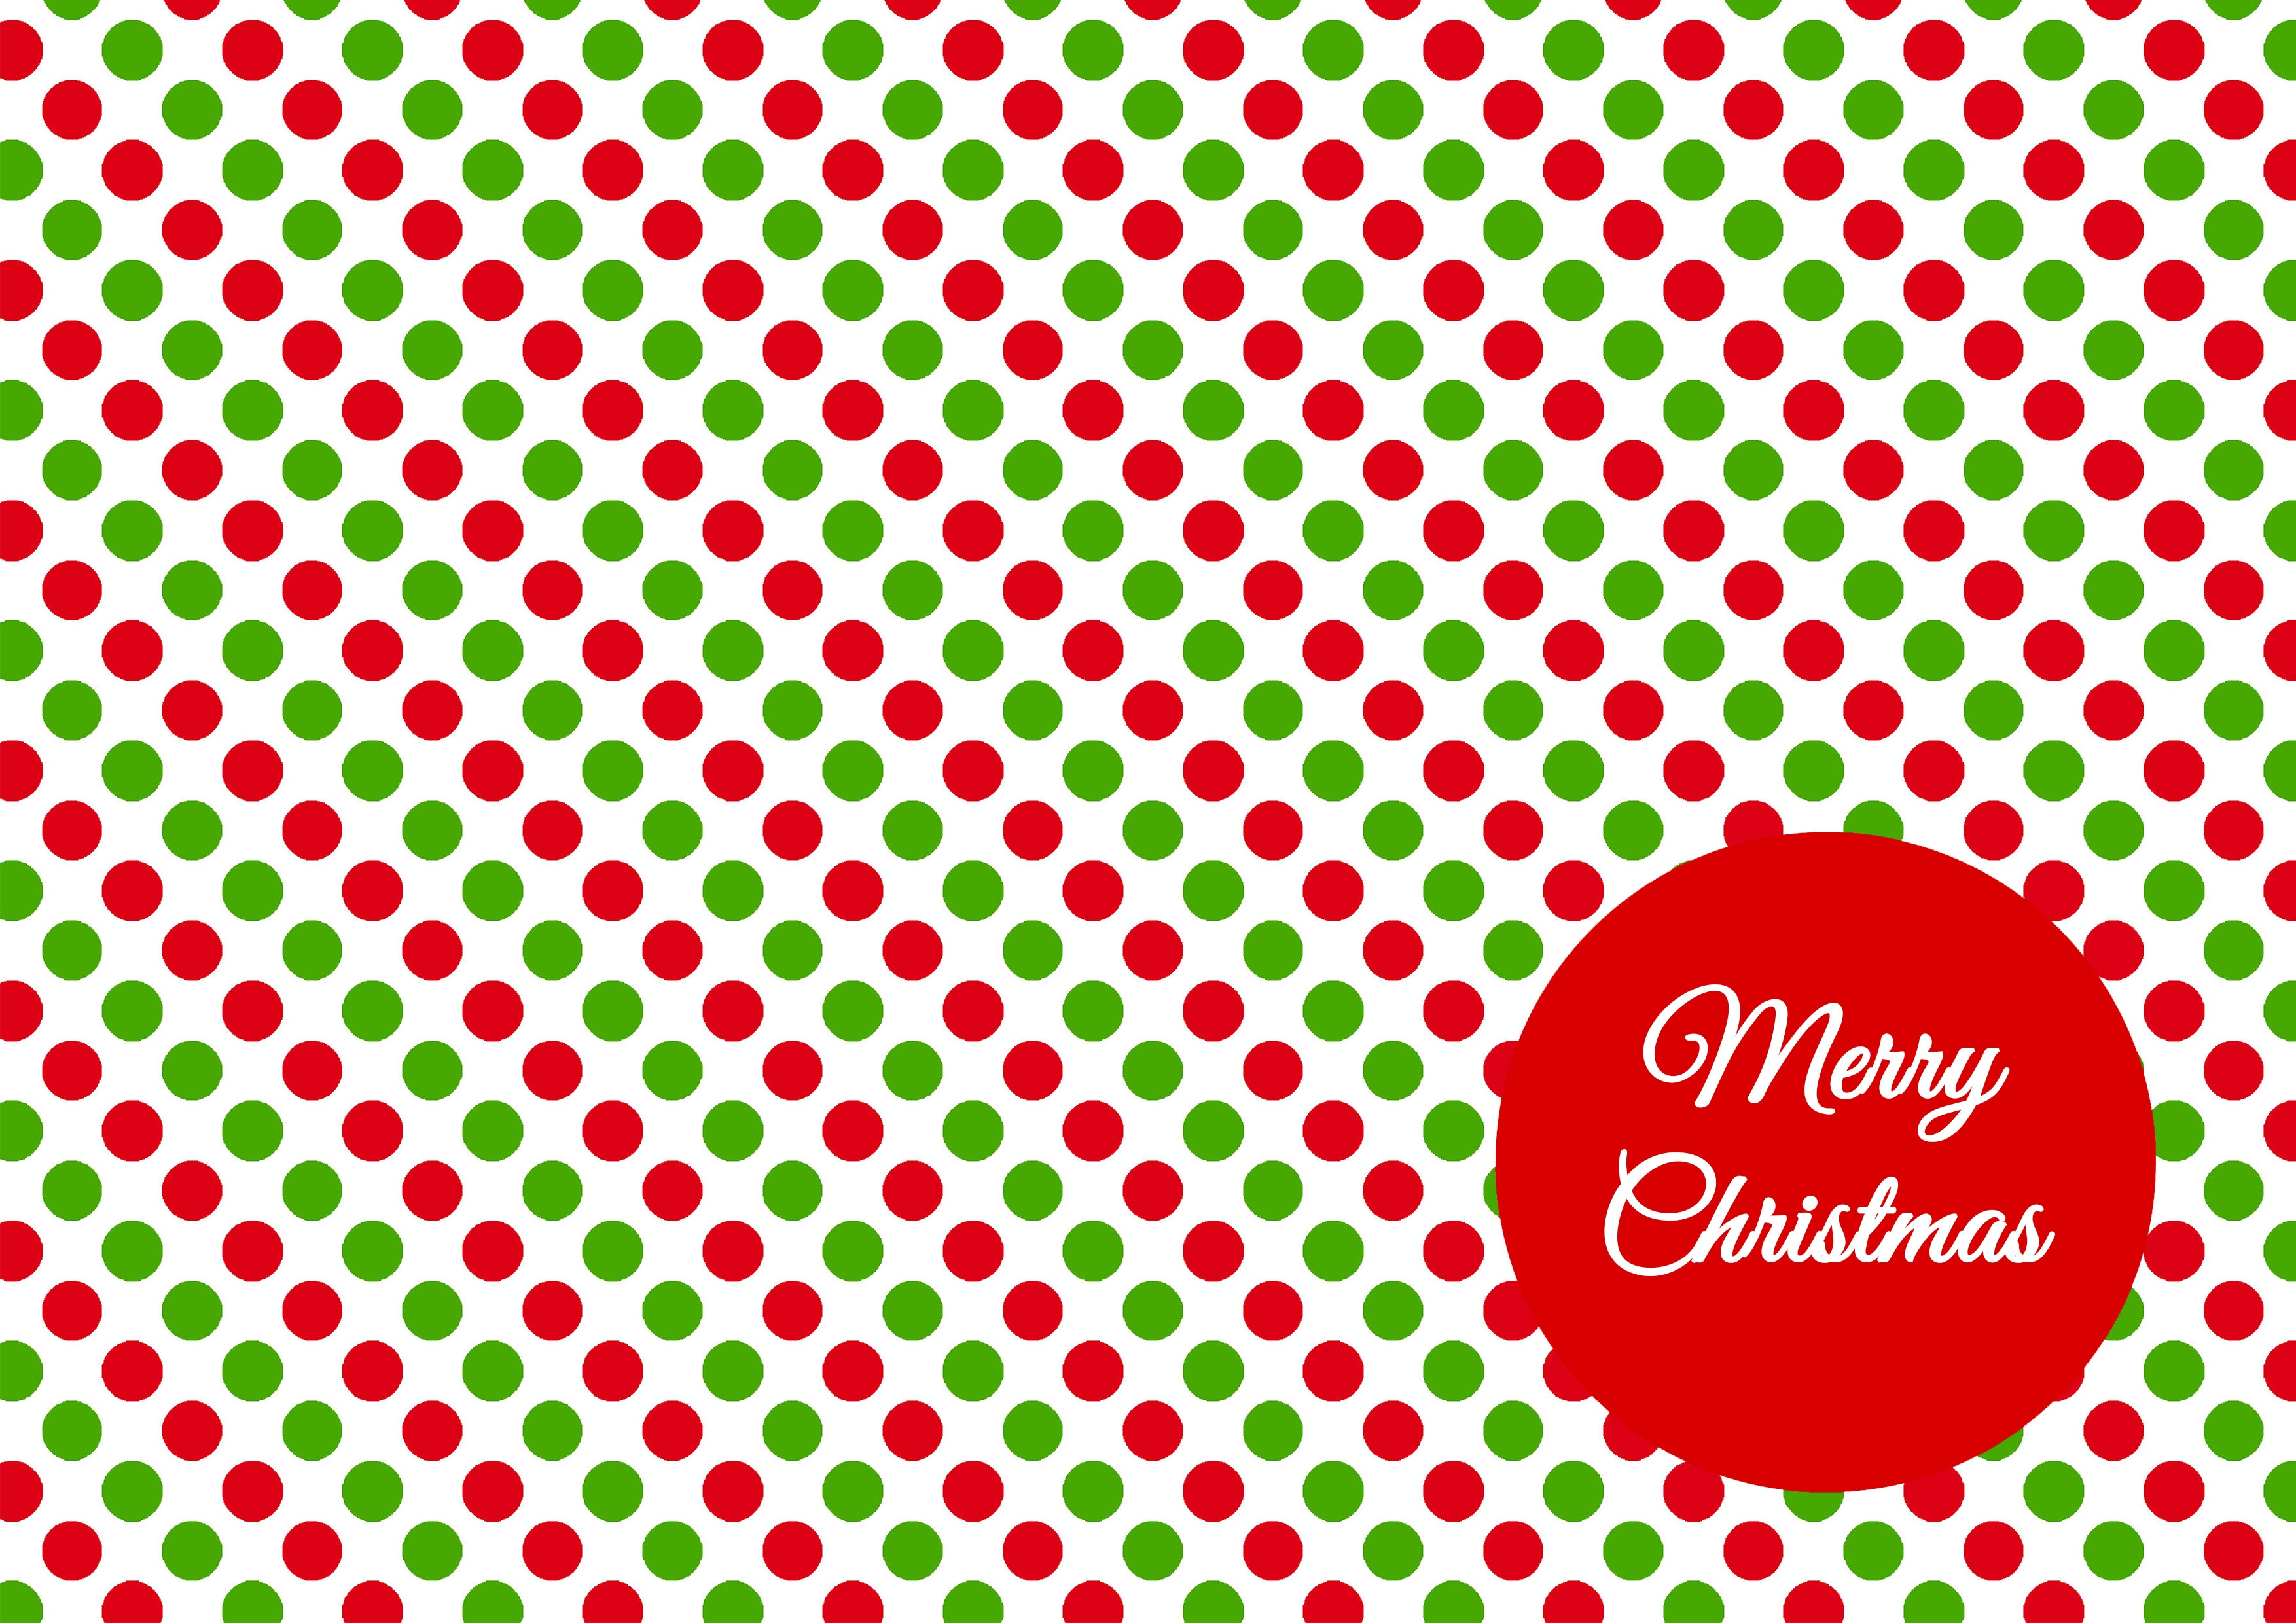 Free Printable Christmas Backgrounds – Happy Holidays! - Free Printable Christmas Backgrounds